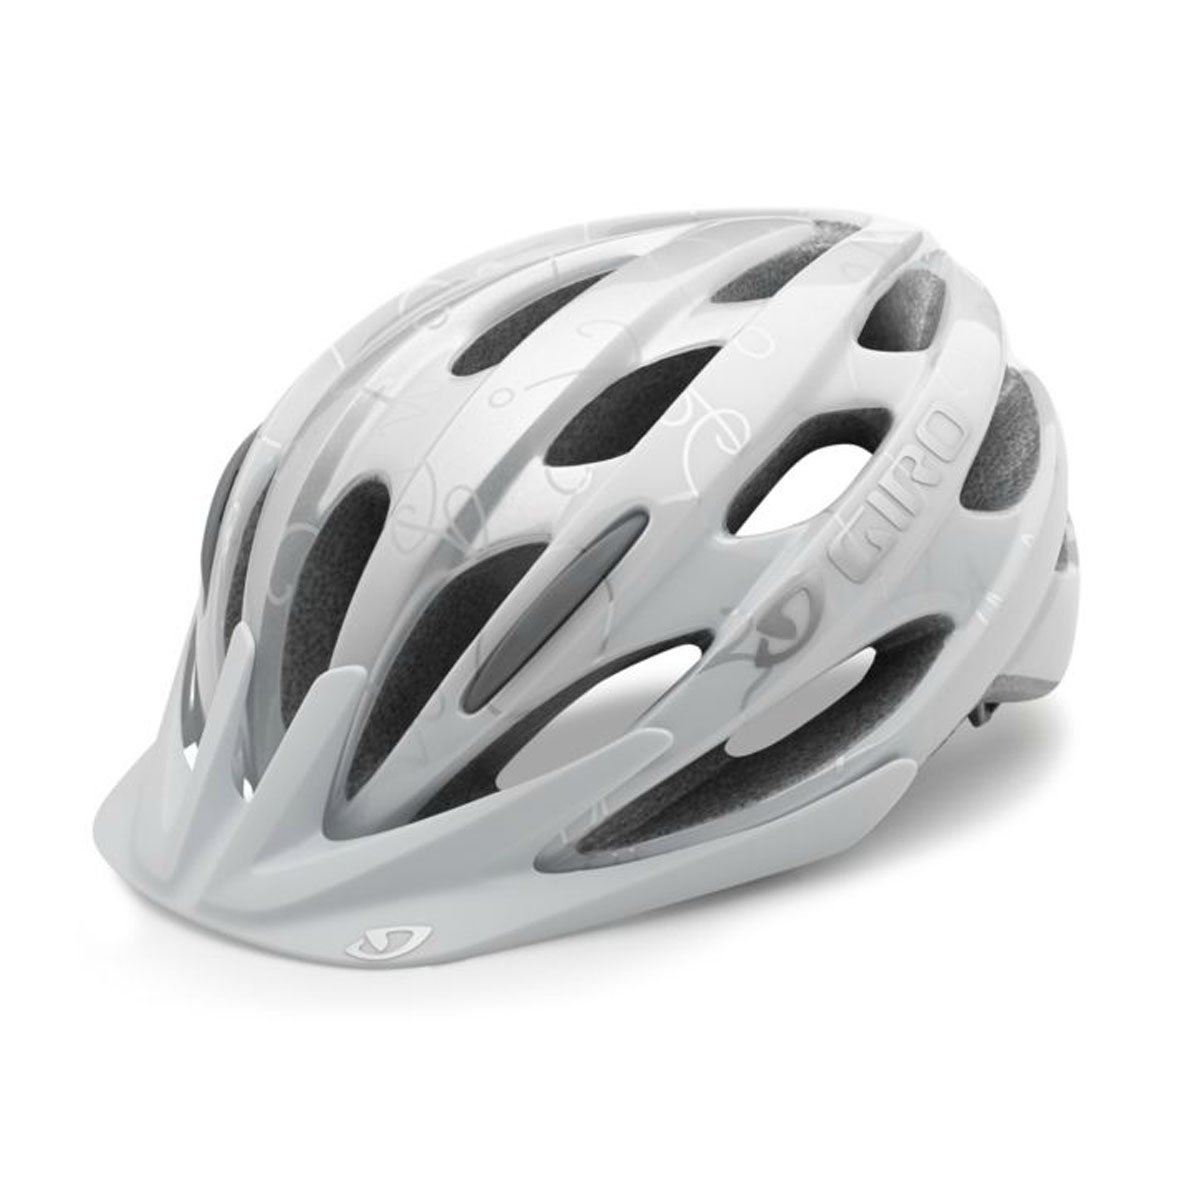 White Giro Bicycle Helmets